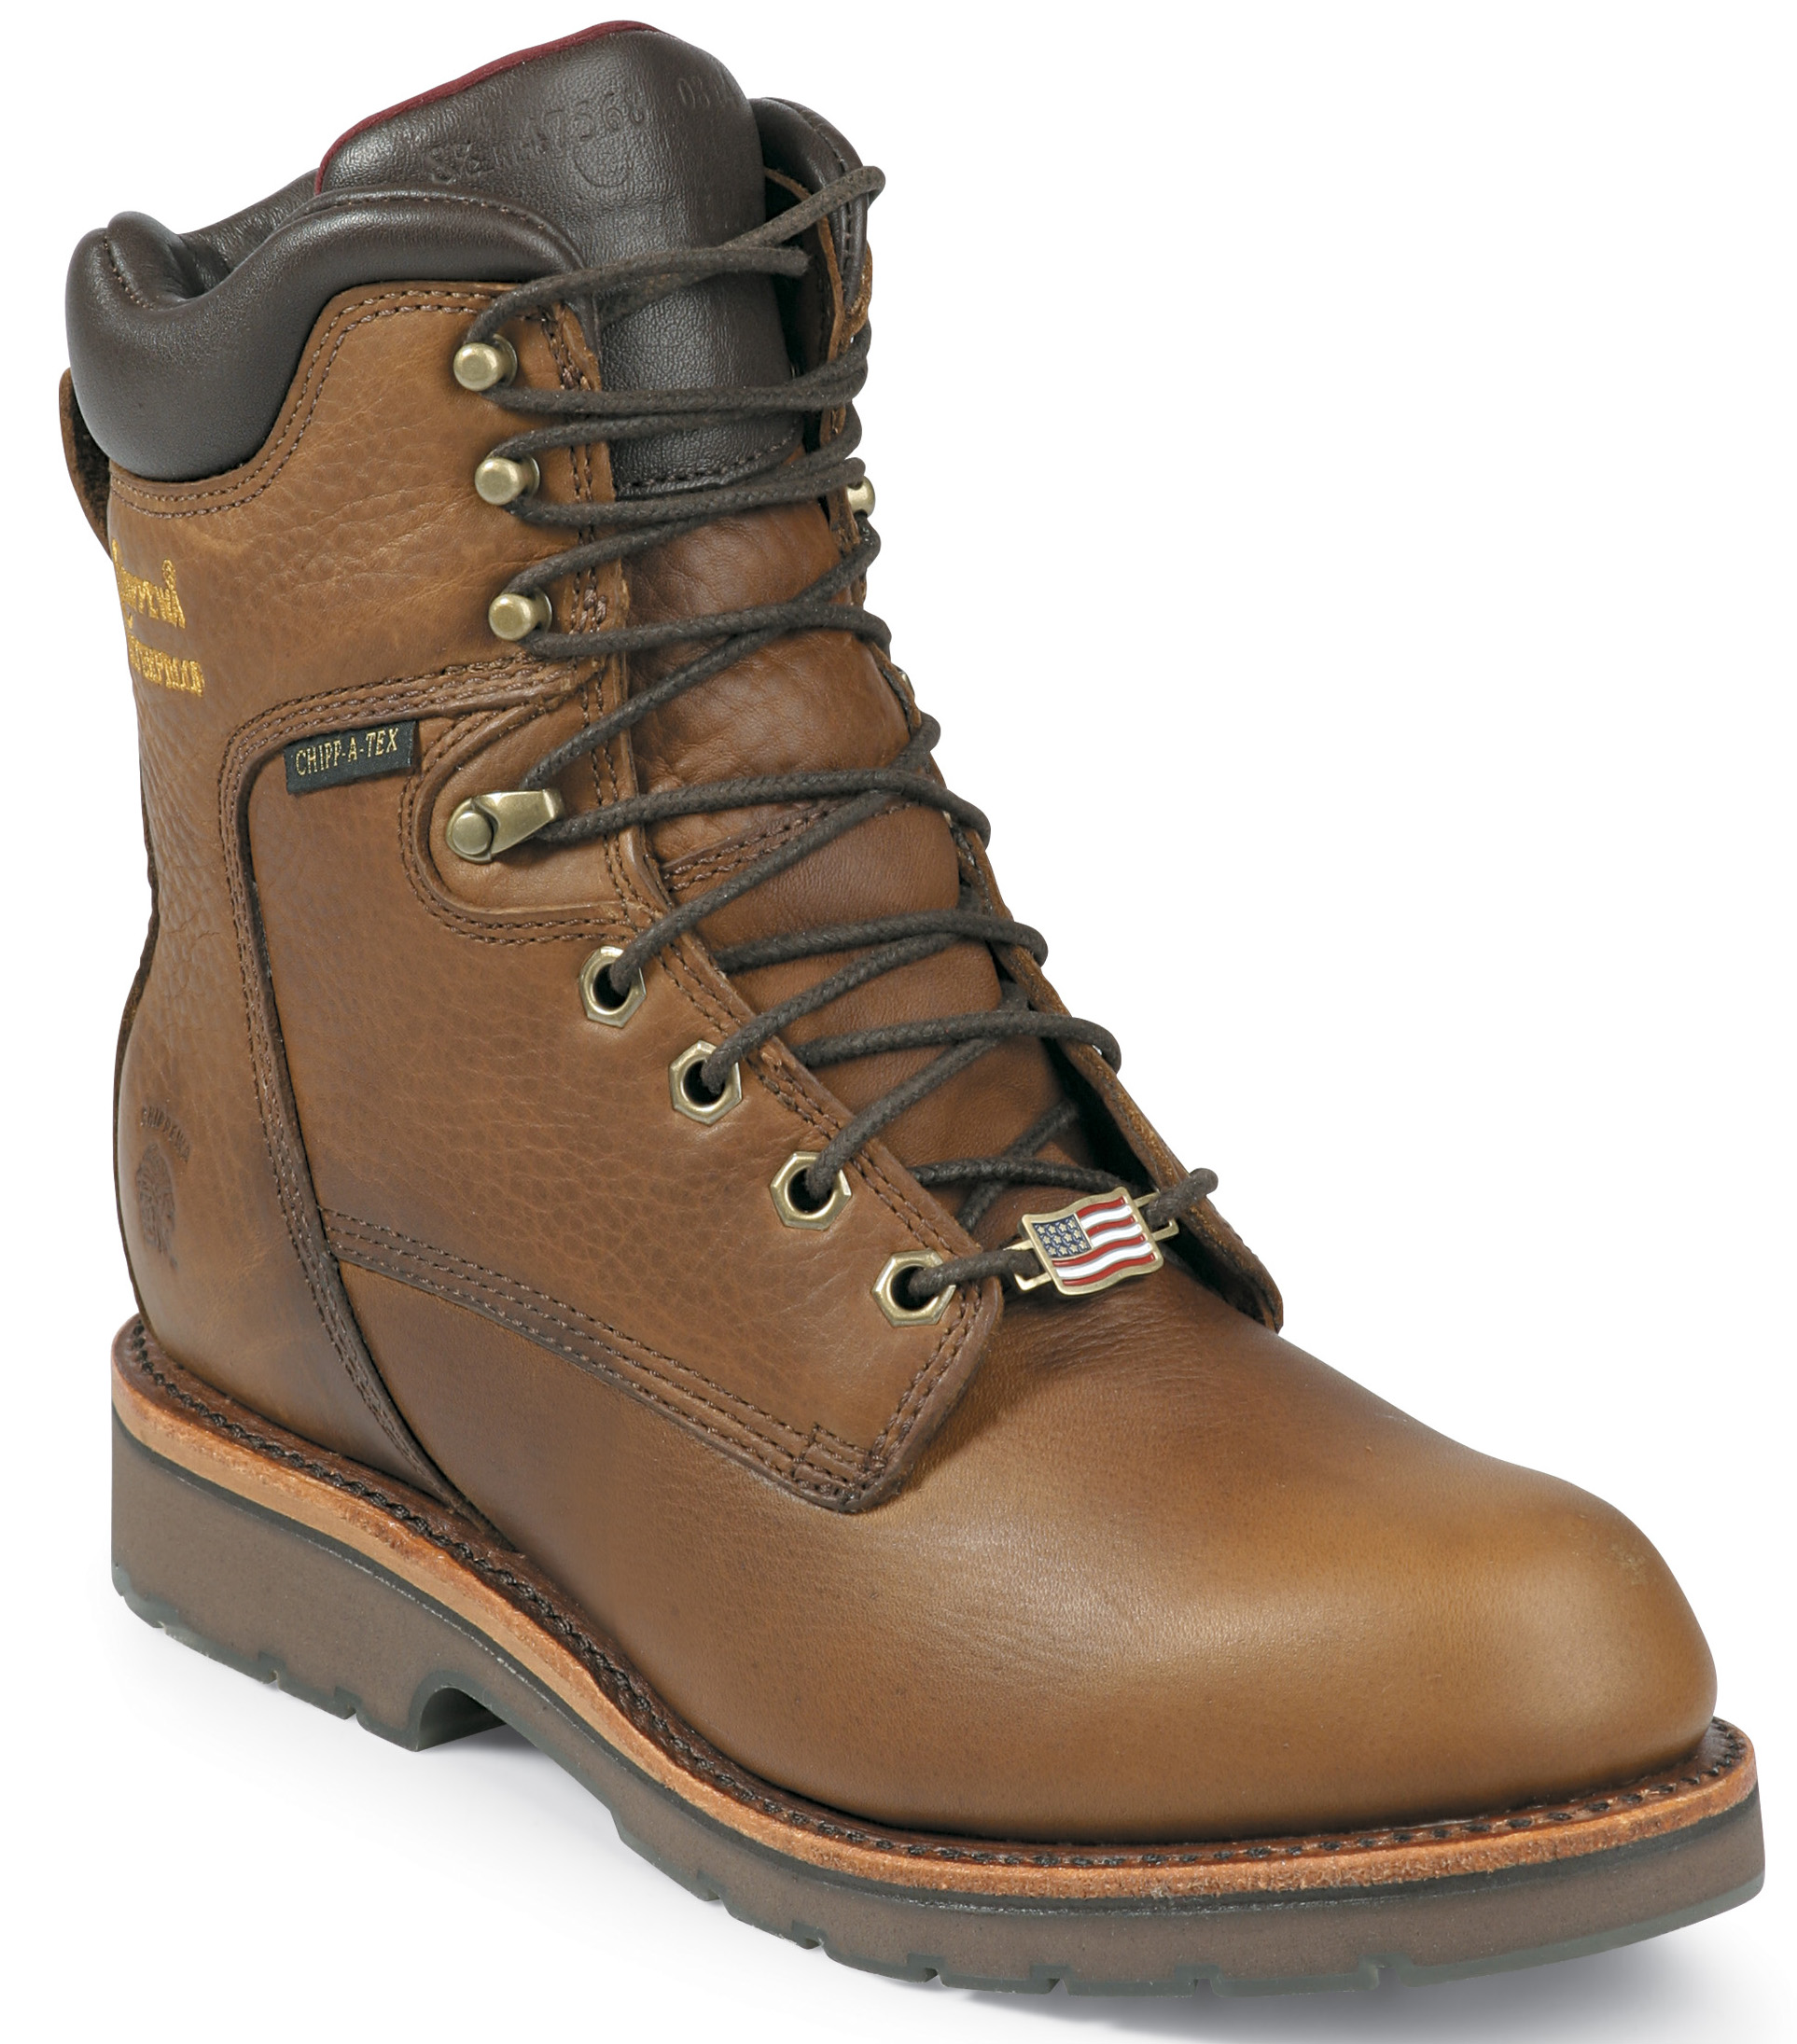 Chippewa Men's Chippewa Country Waterproof Insulated Work Boots Made In USA 25228 (EE) at Sears.com